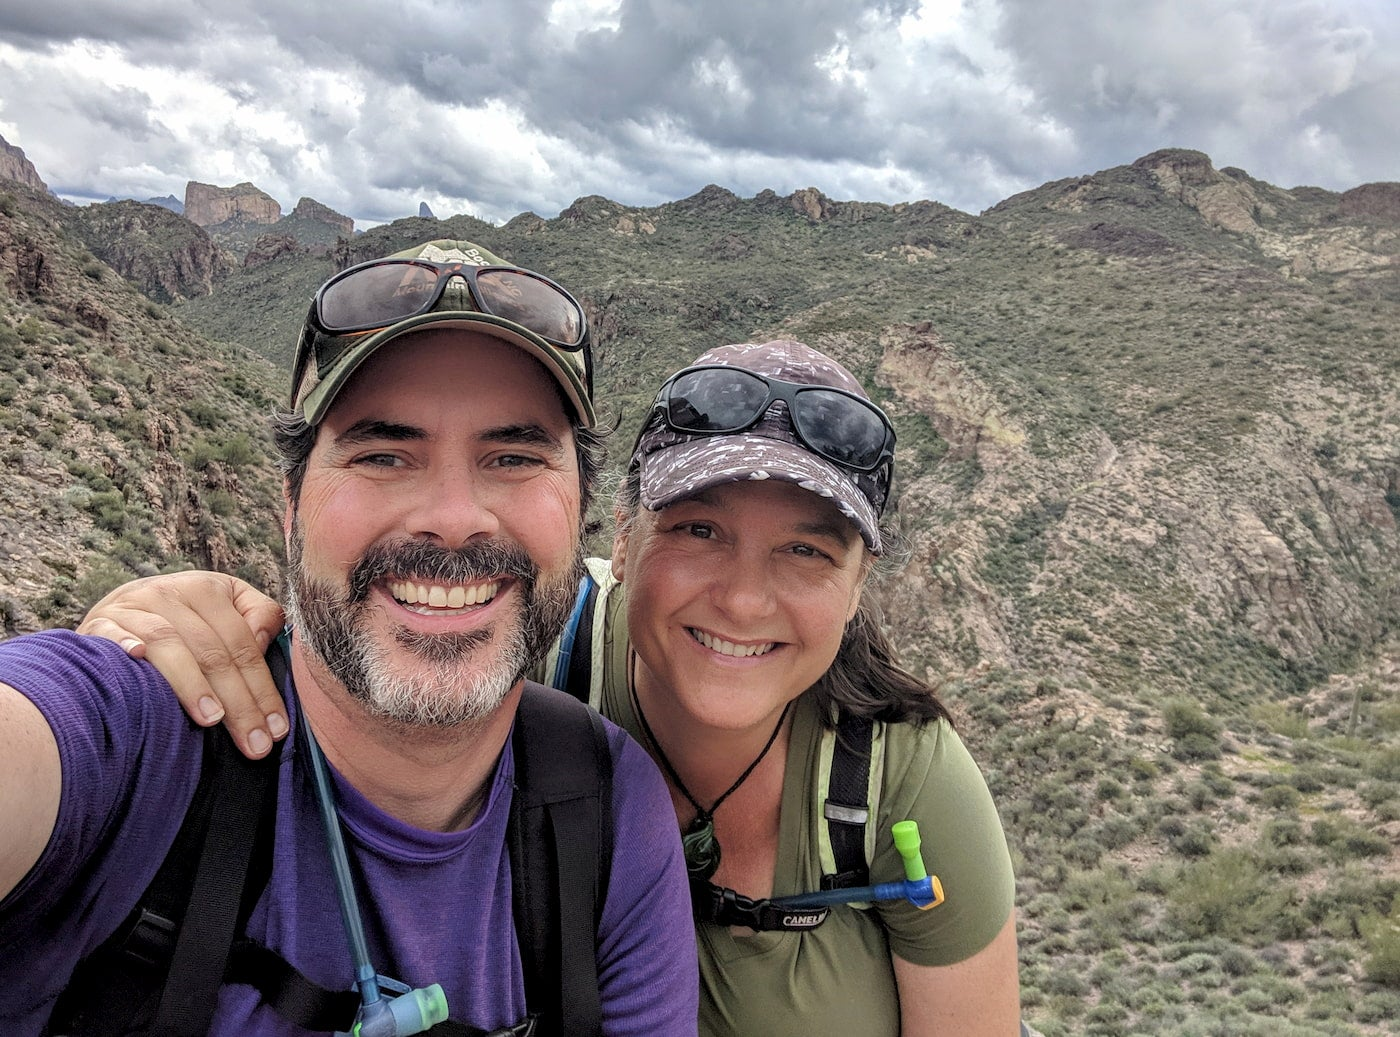 Shari and Hutch hiking in the Superstition Mountains.